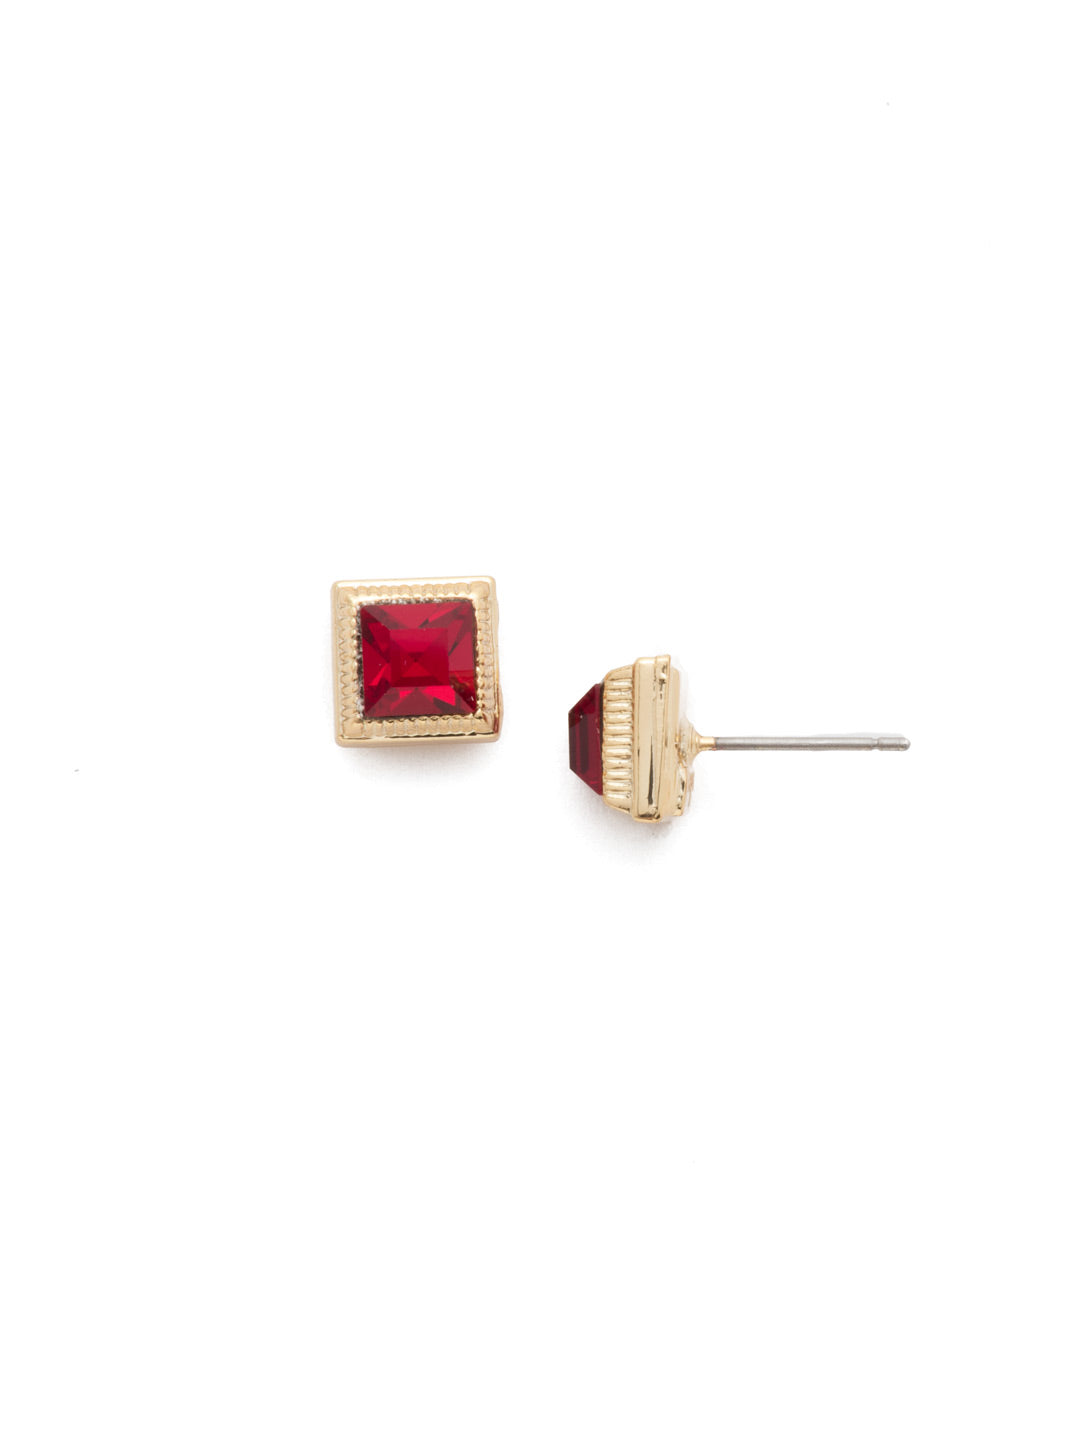 Pasquelina Stud Earrings - EEA16BGSRC